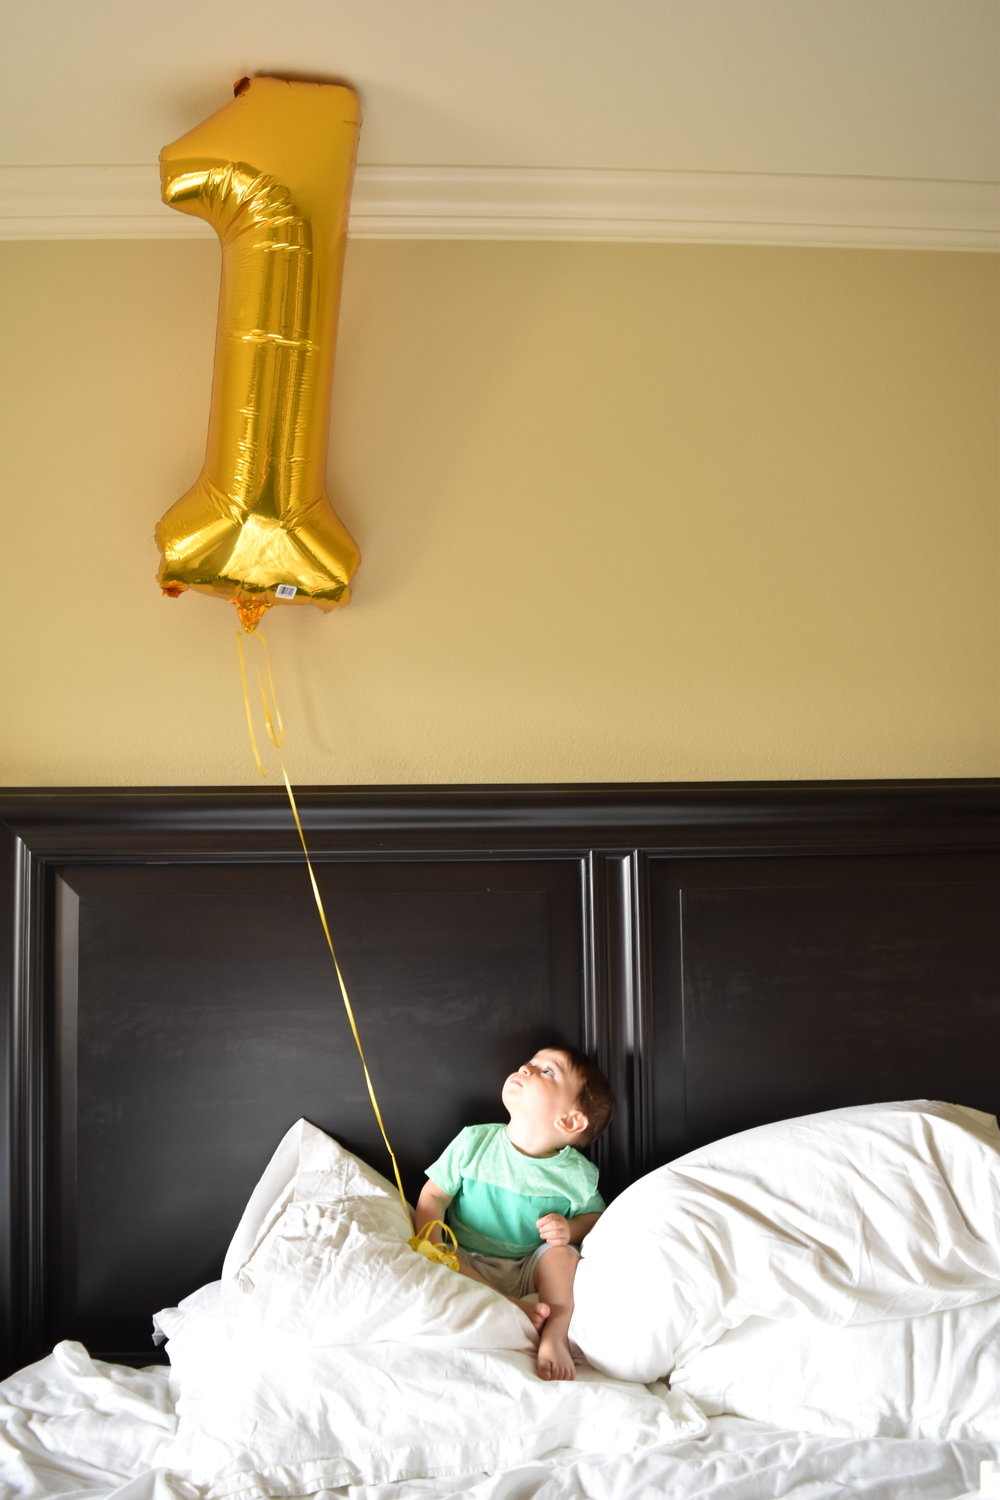 ryan balloon bed 3